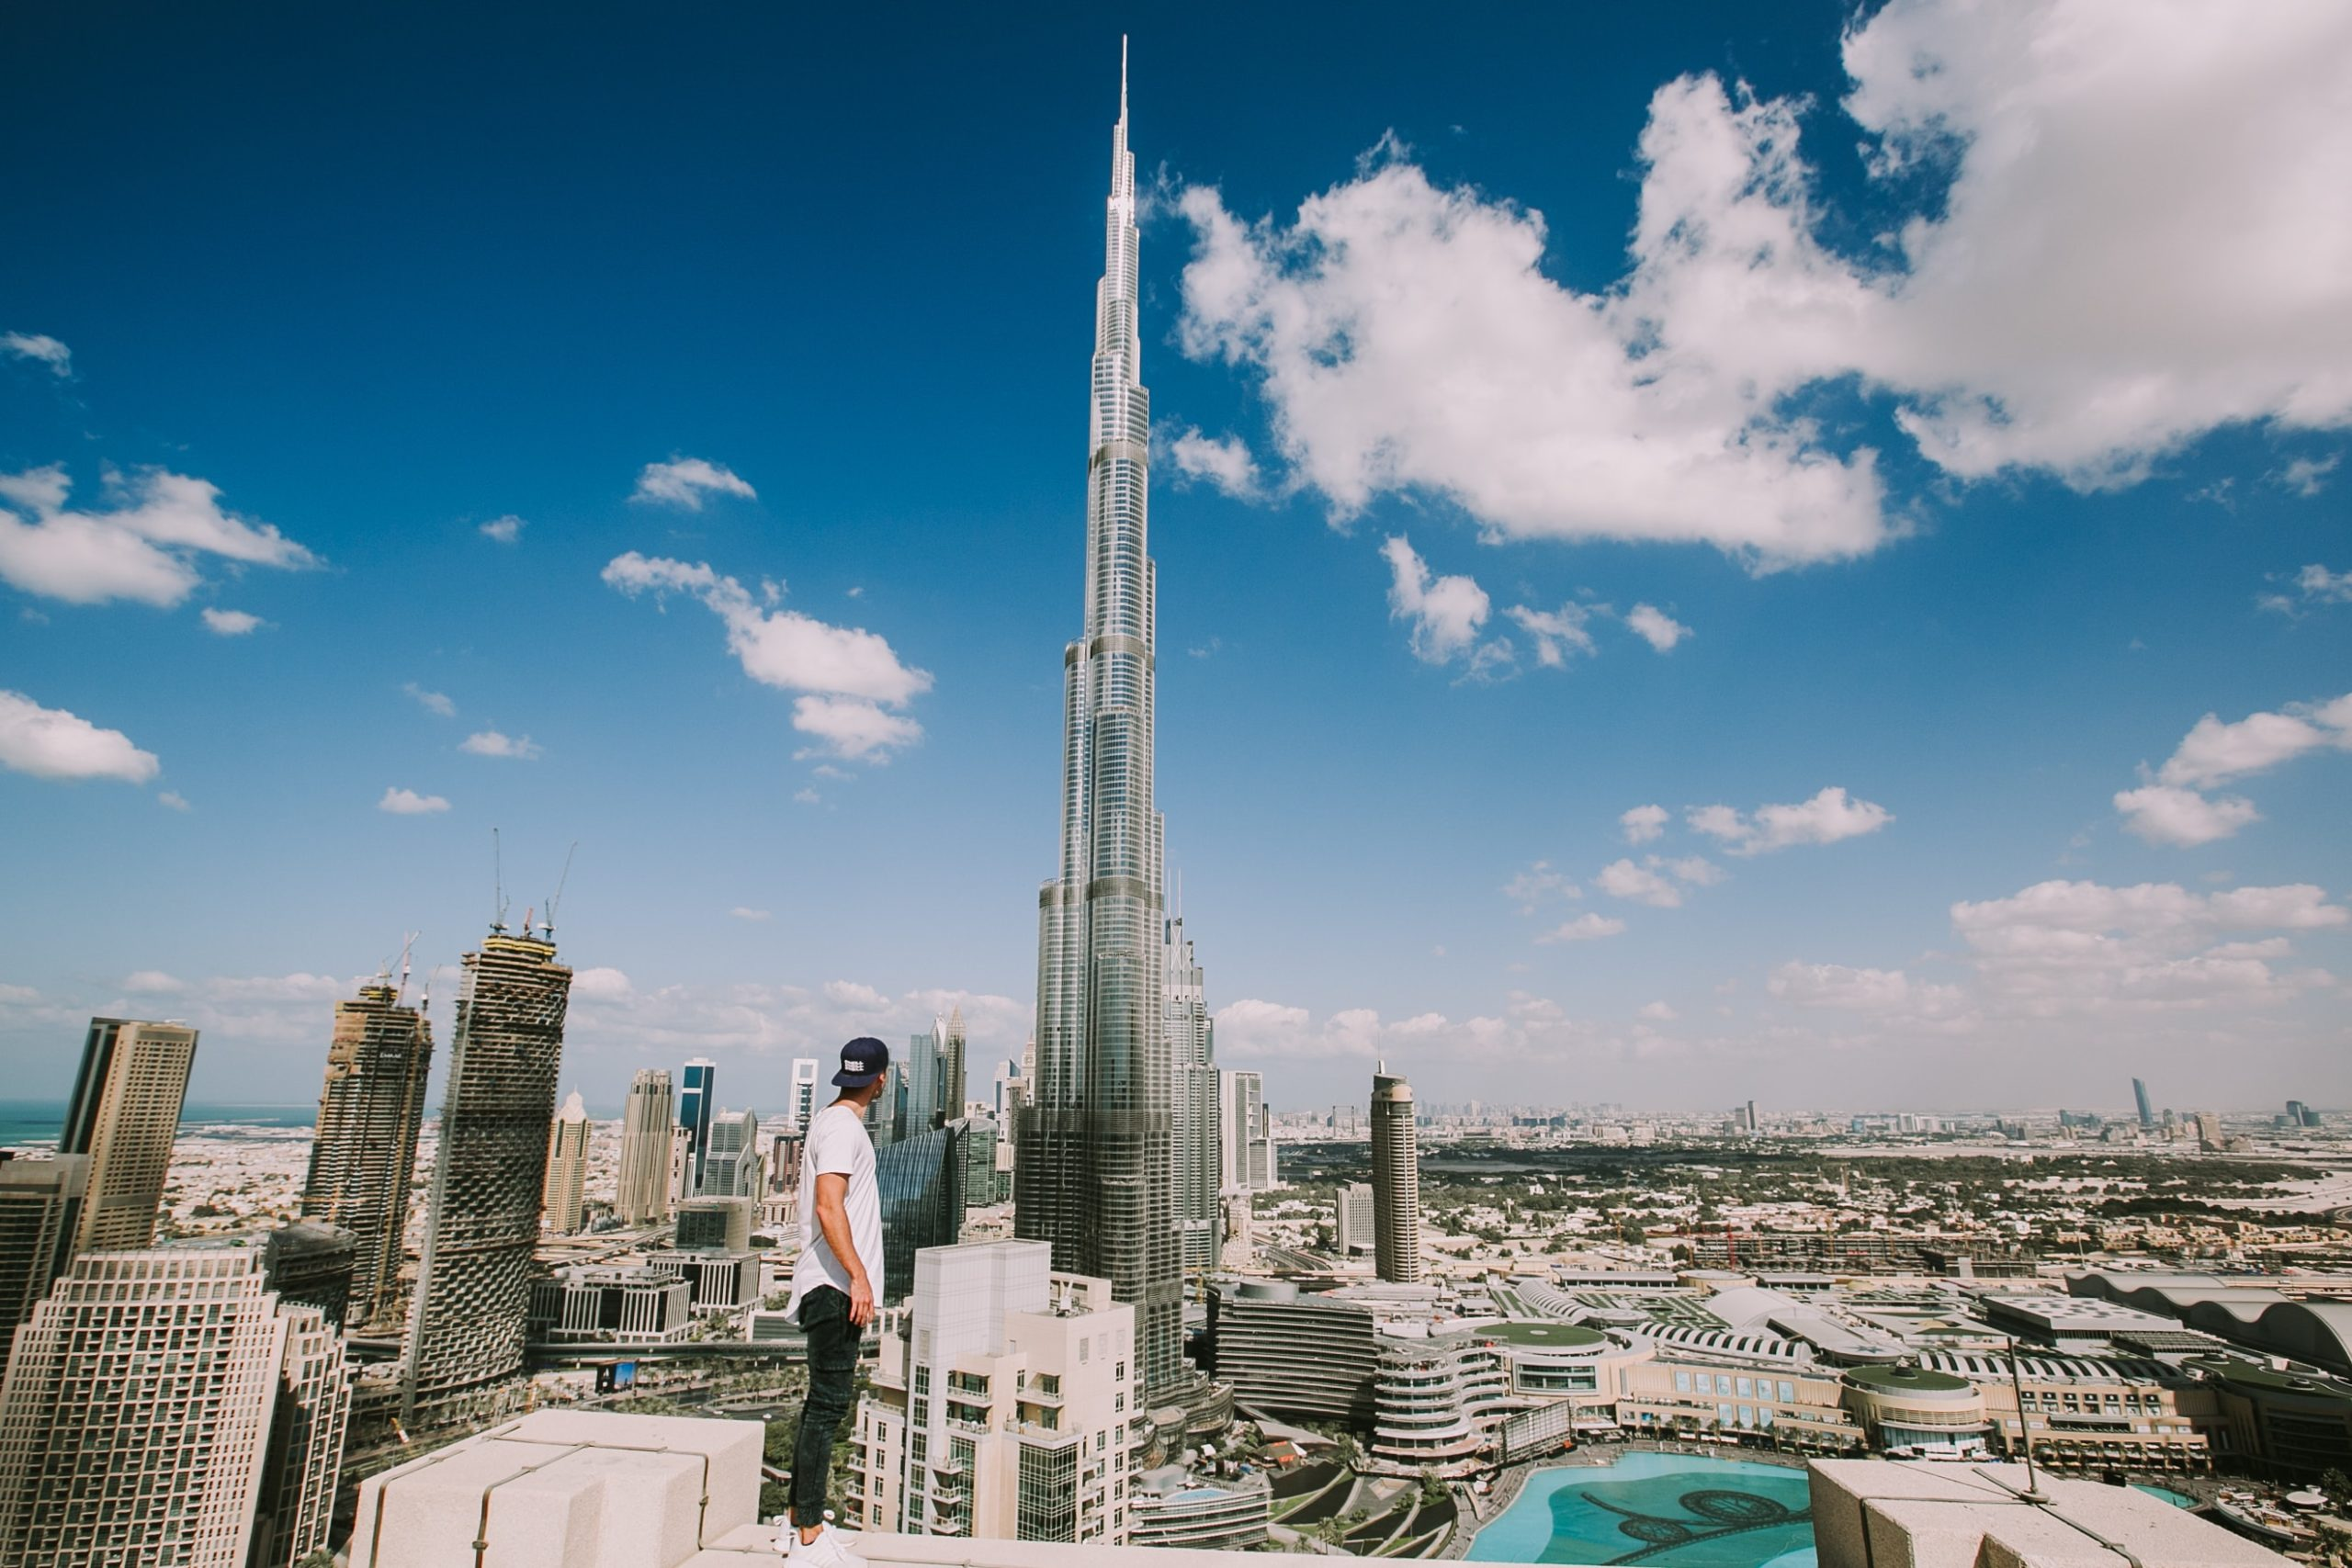 a young man standing atop a roof with the Burj Khalifa in the background